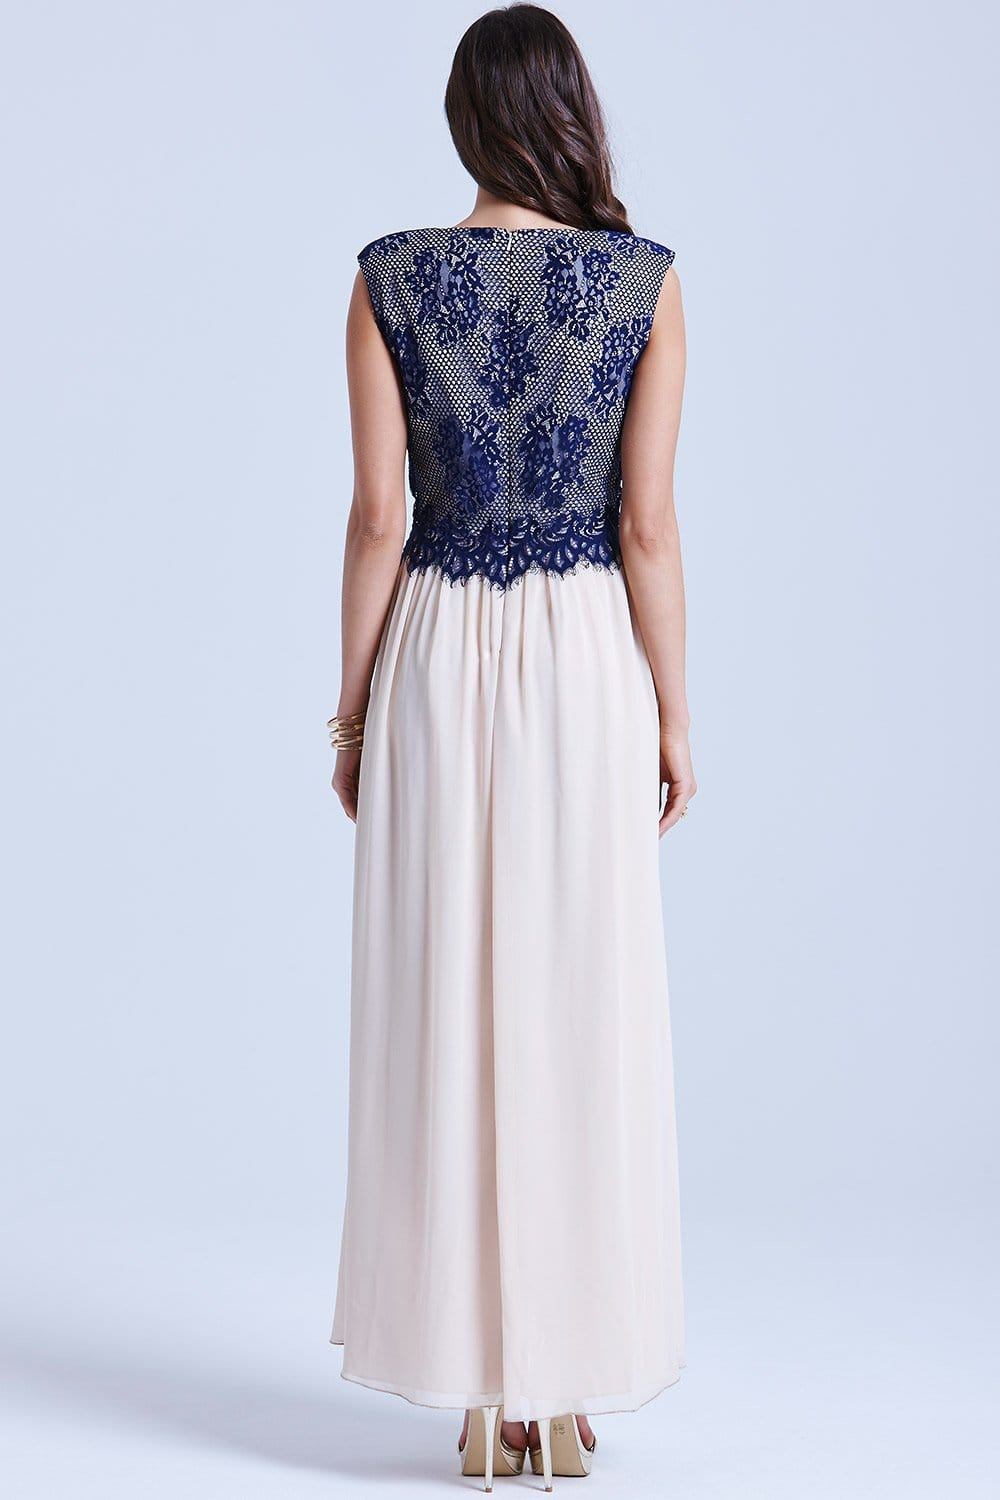 Cream And Navy Lace Overlay Maxi Dress